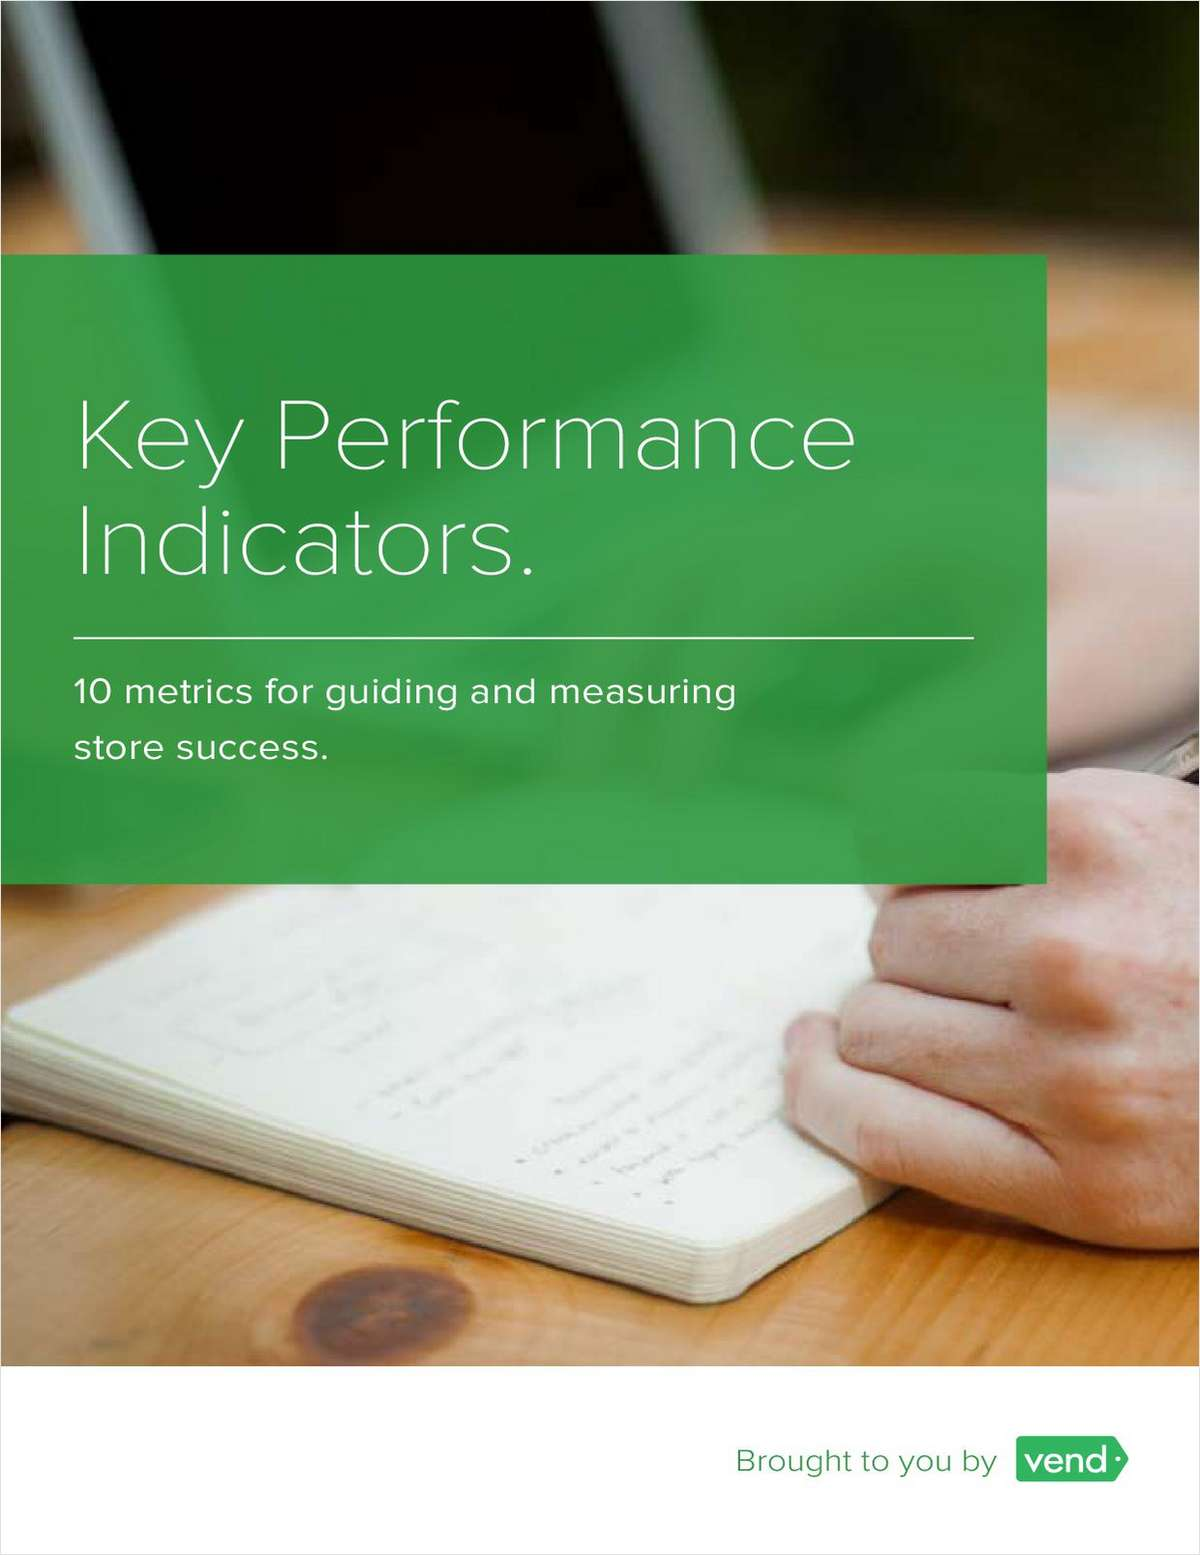 Retail KPIs Guide: 10 Key Performance Indicators Every Retailer Should Track